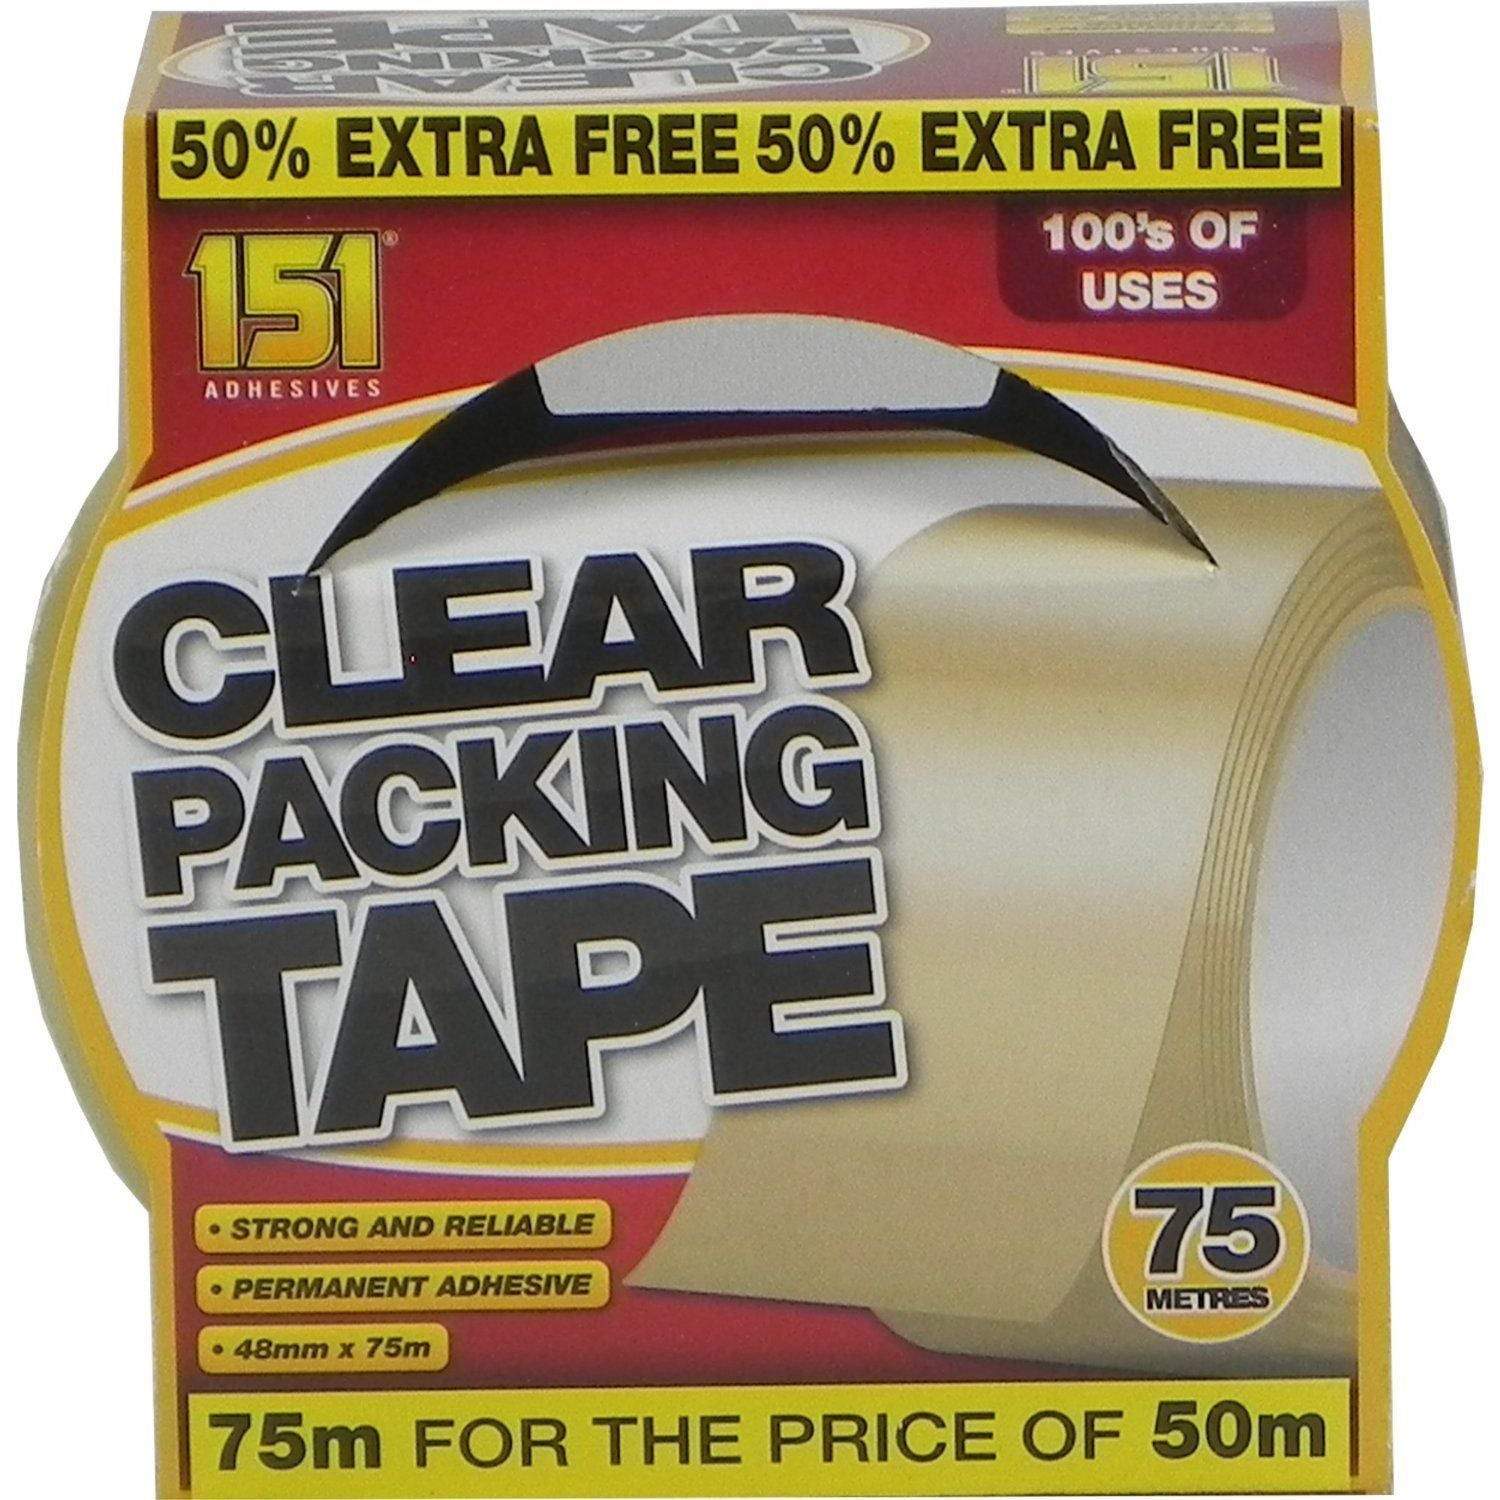 Clear Packing Tape 48mm x 75m